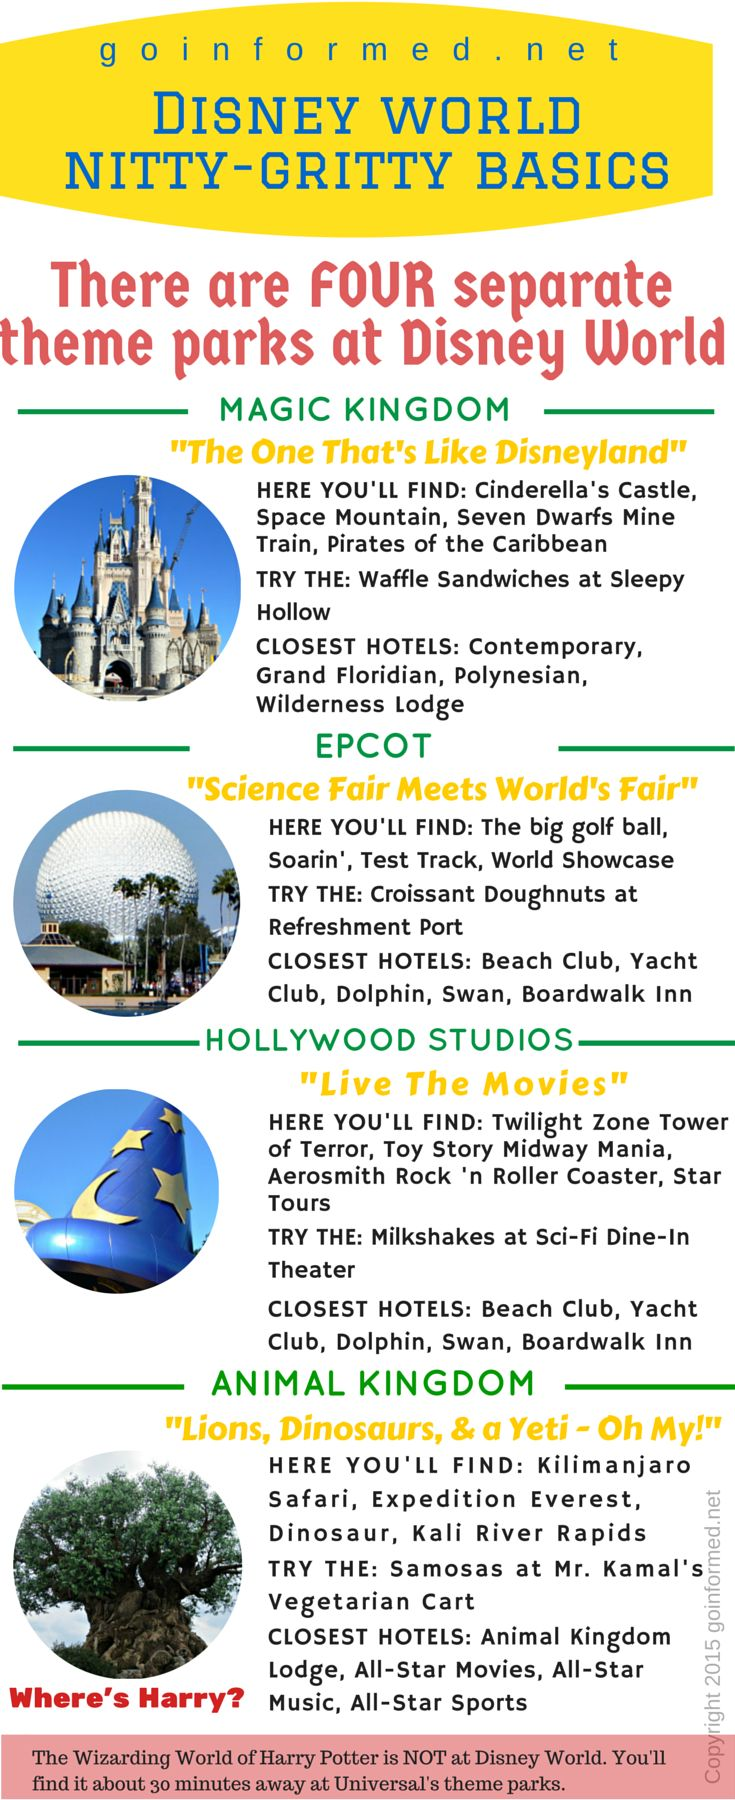 This isn't Disneyland. Love this At-a-Glance view of Disney World's FOUR theme parks.